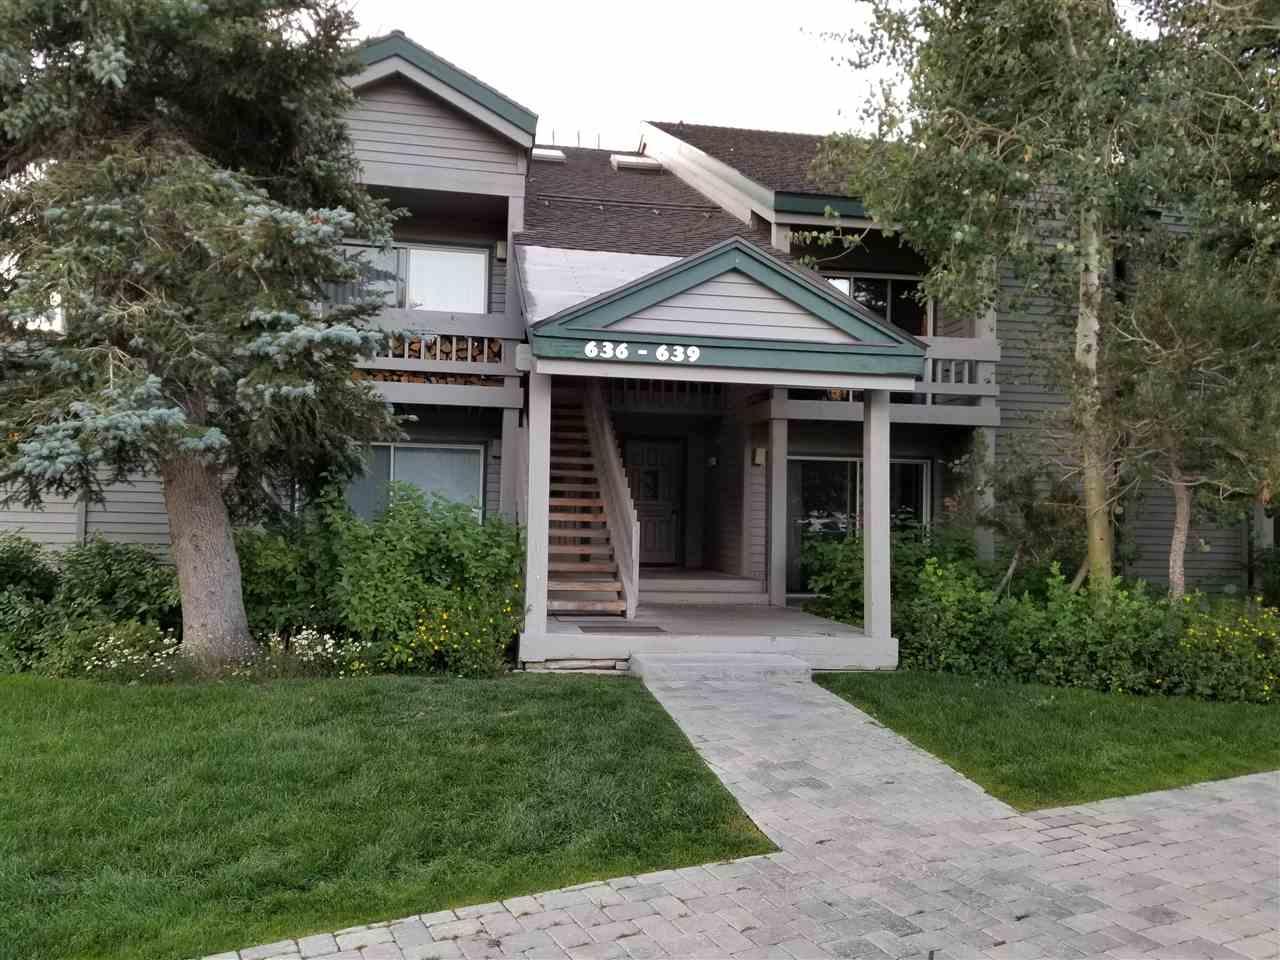 637 Golden Creek Rd, Mammoth Lakes, CA 93546